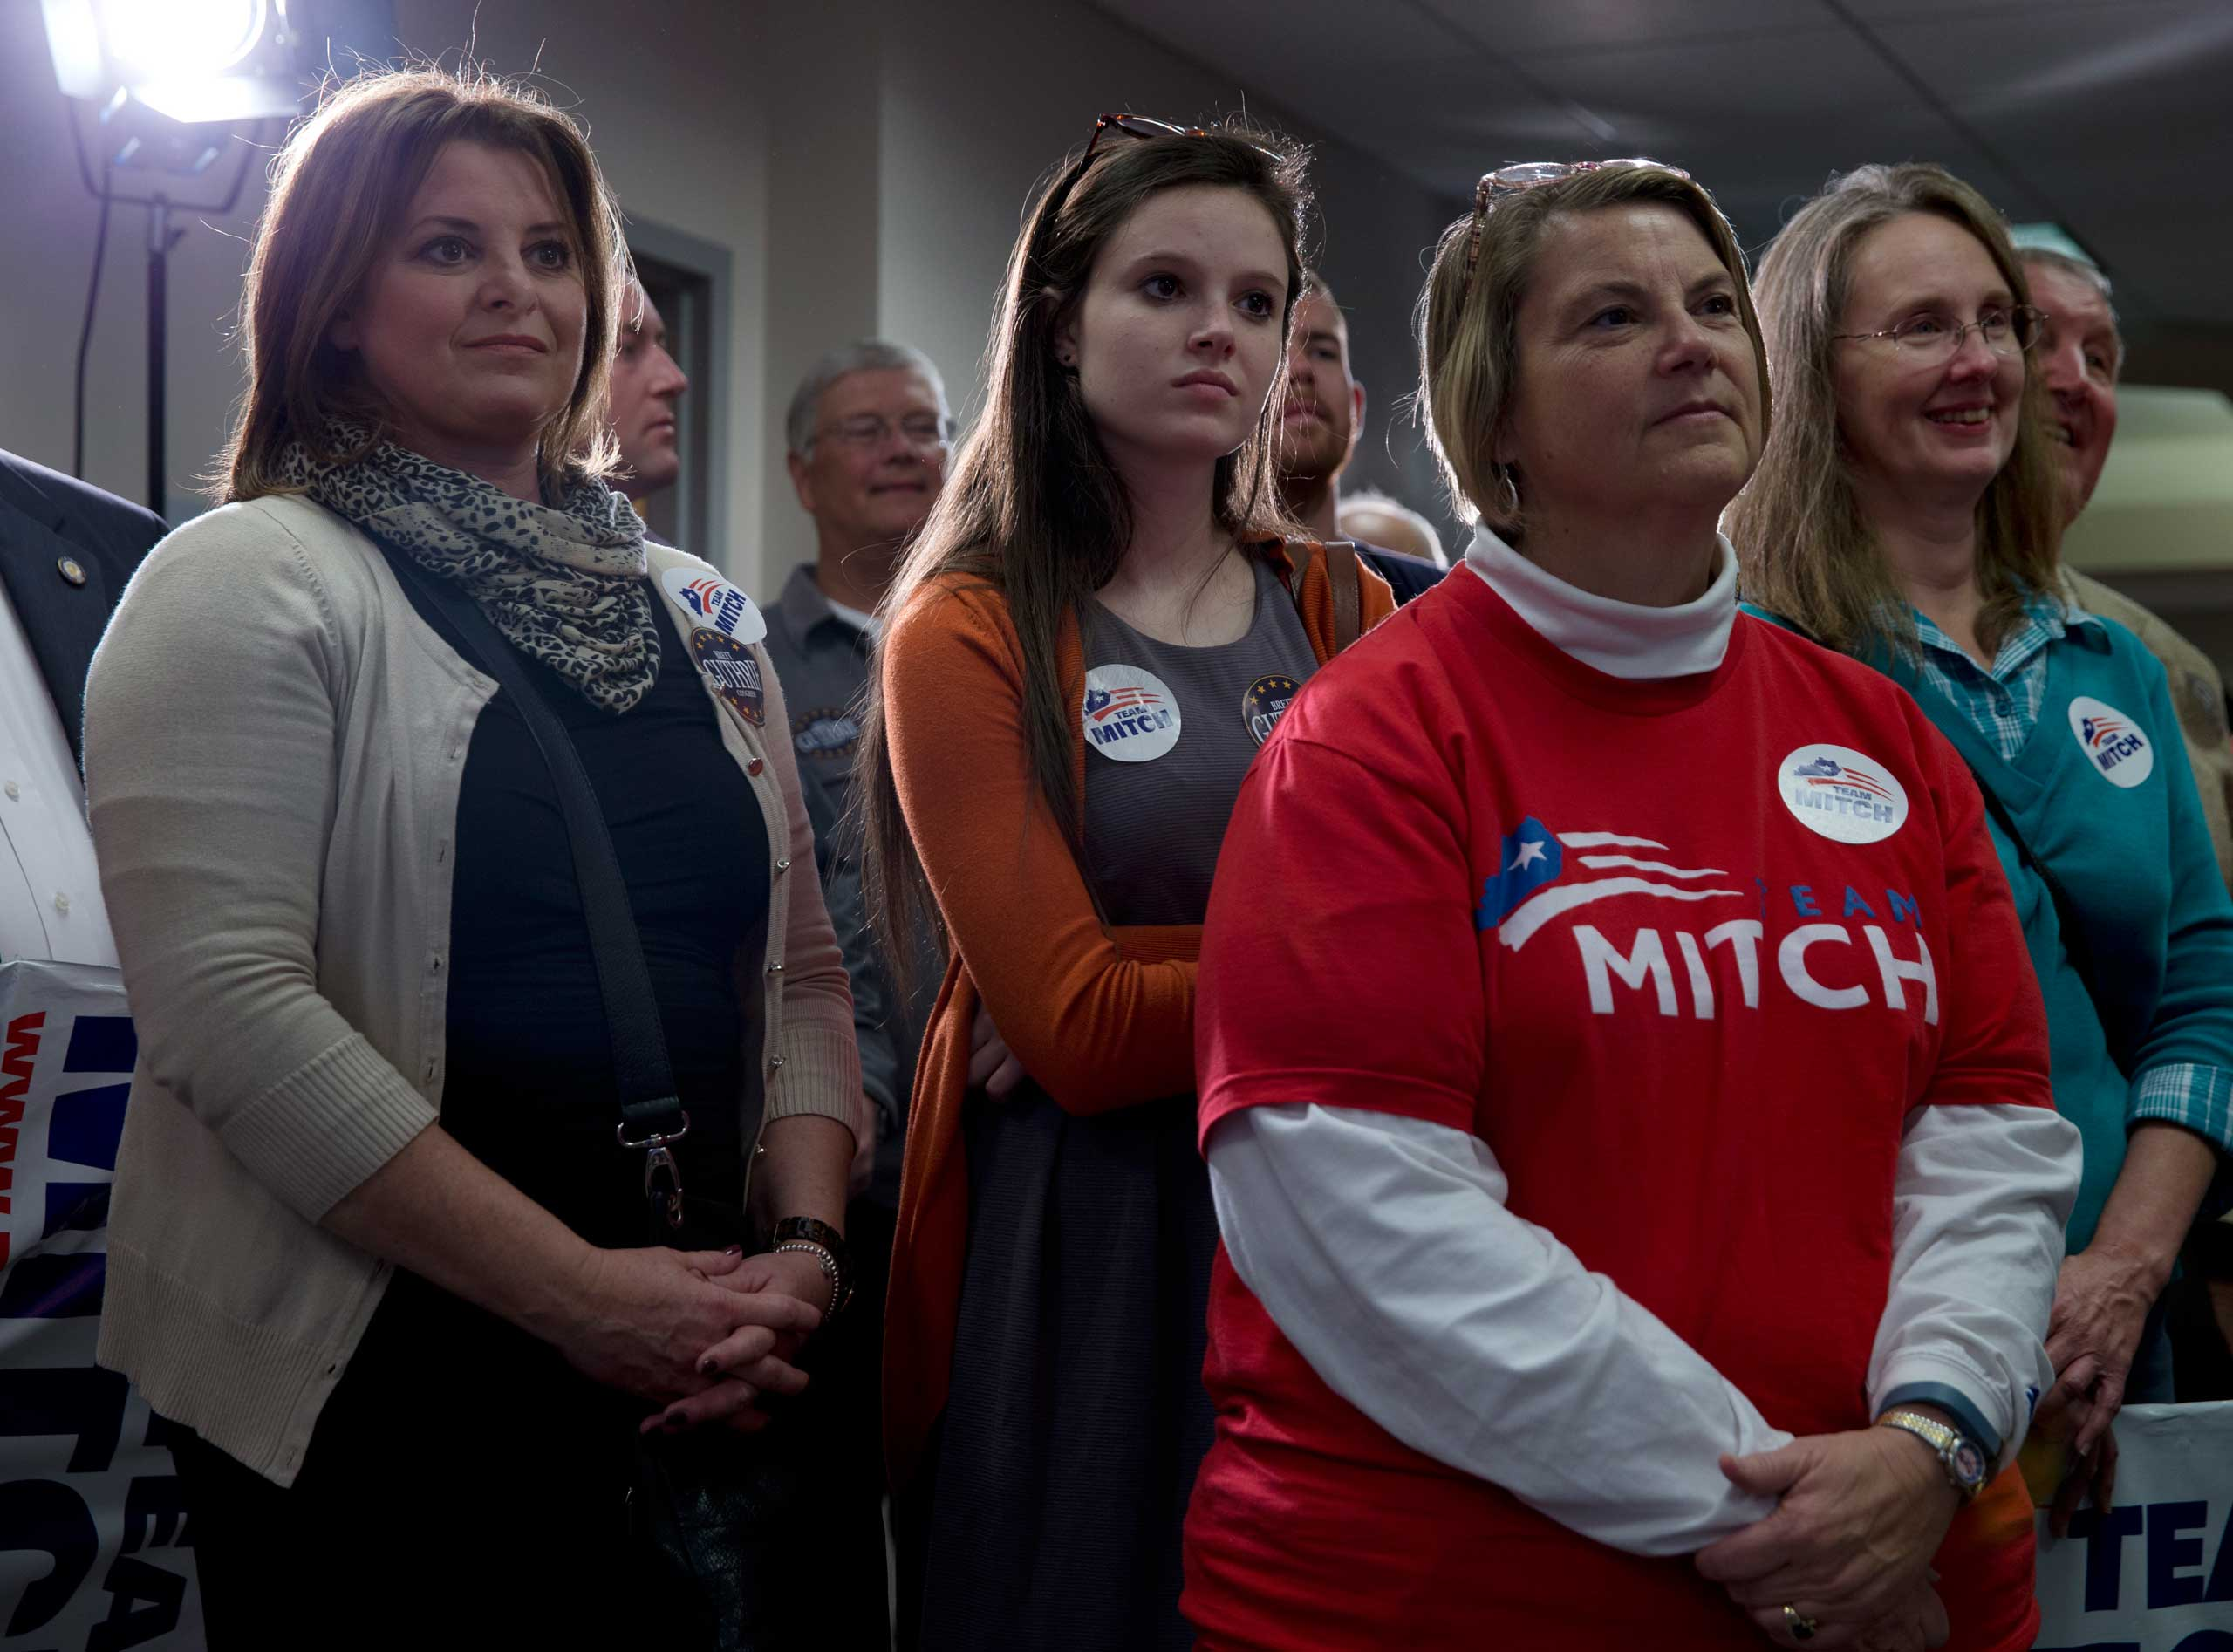 Supporters of Sen. Mitch McConnell at campaign rally at the Bowling Green-Warren Co. Regional Airport in Bowling Green, Ky. on Nov. 3, 2014.